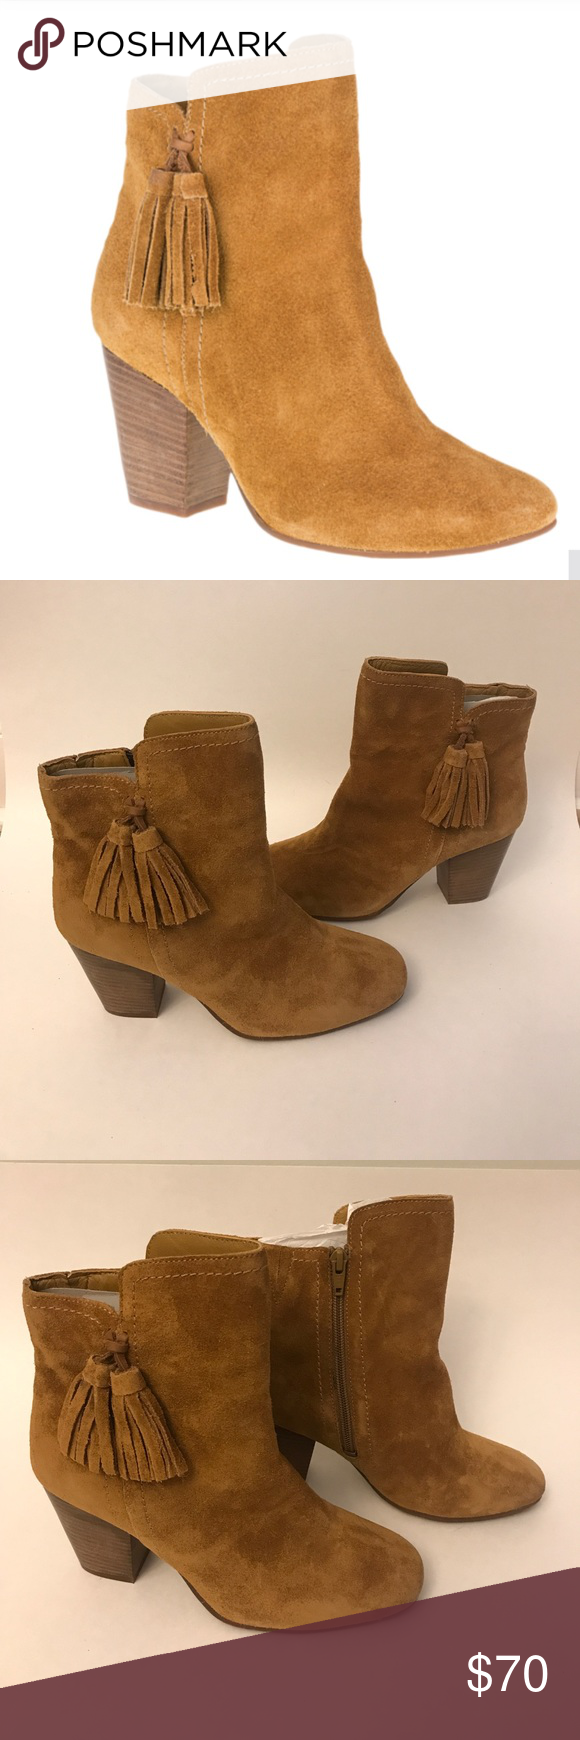 b67a39a59a0 NEW Hush Puppies Daisee Billie Suede Boots Size 7 These are brand NEW  without tag Hush